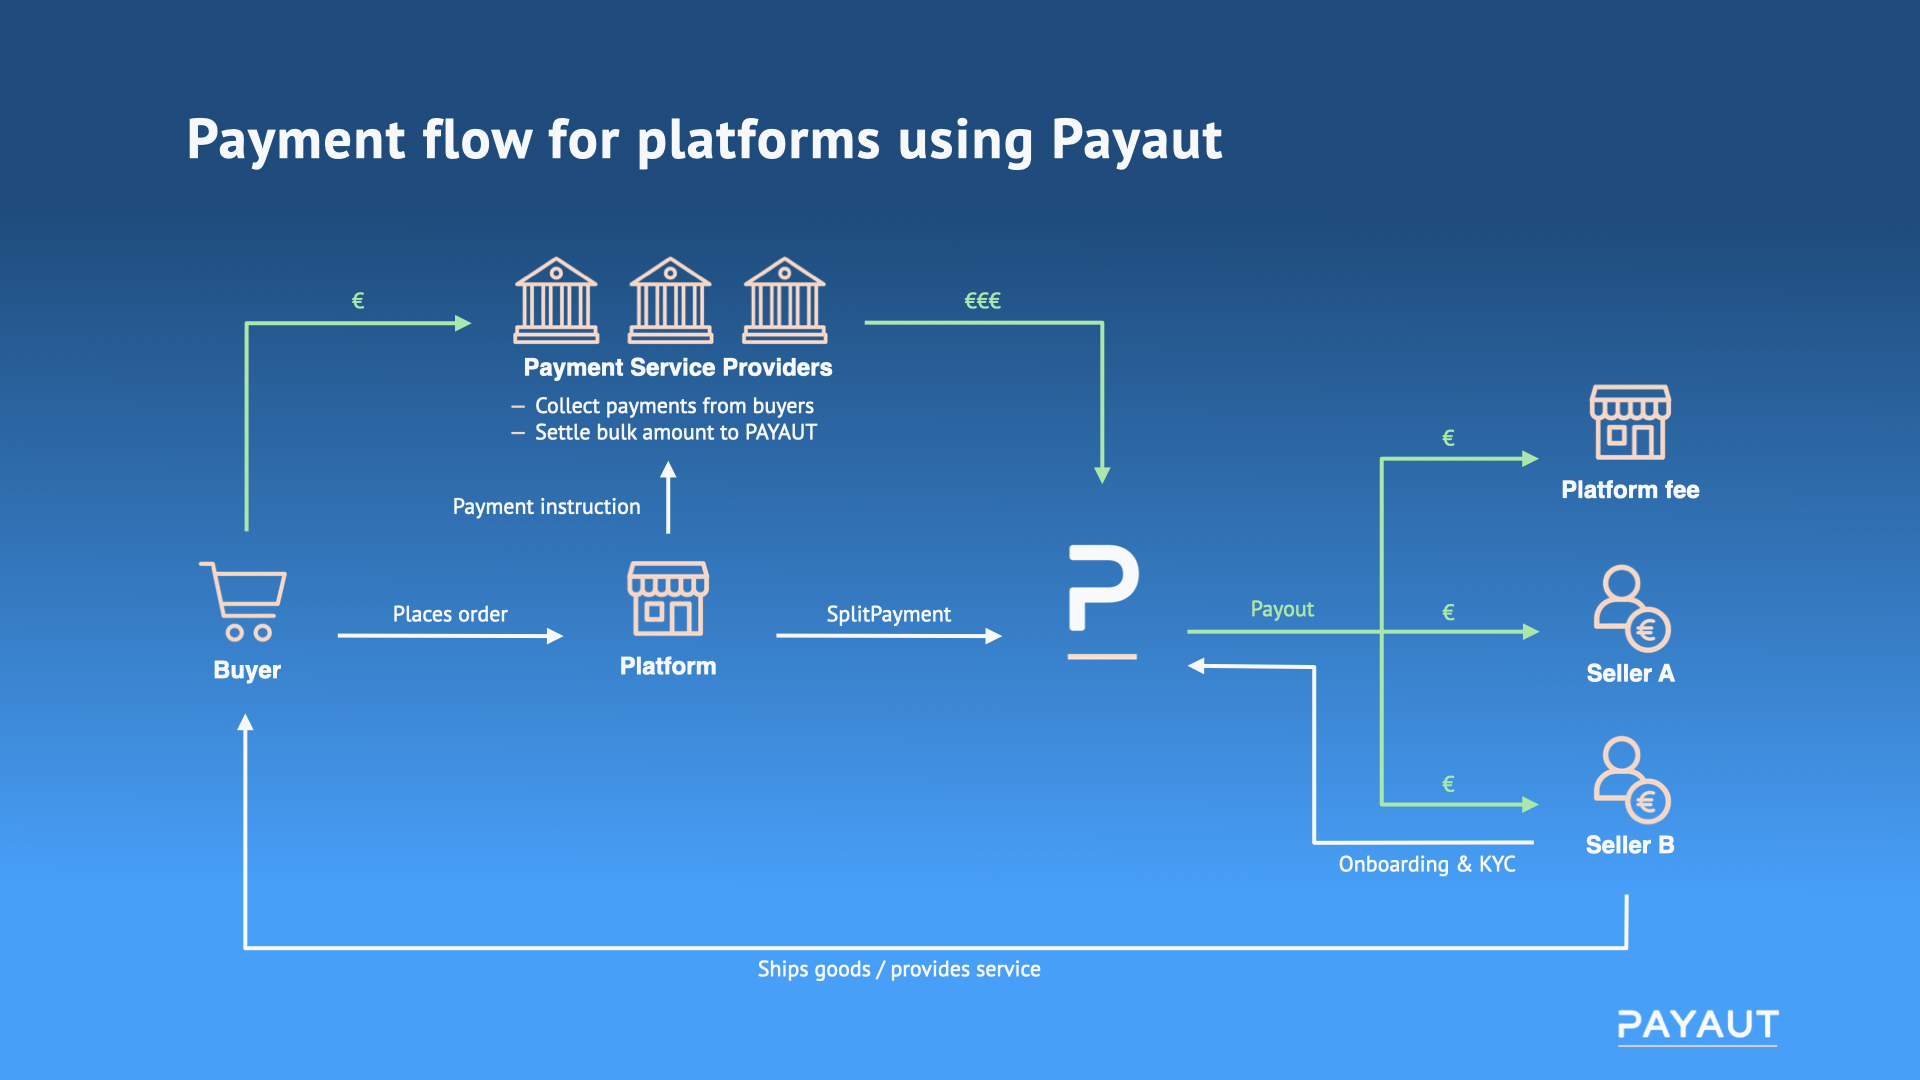 Online marketplaces pay out with Payaut